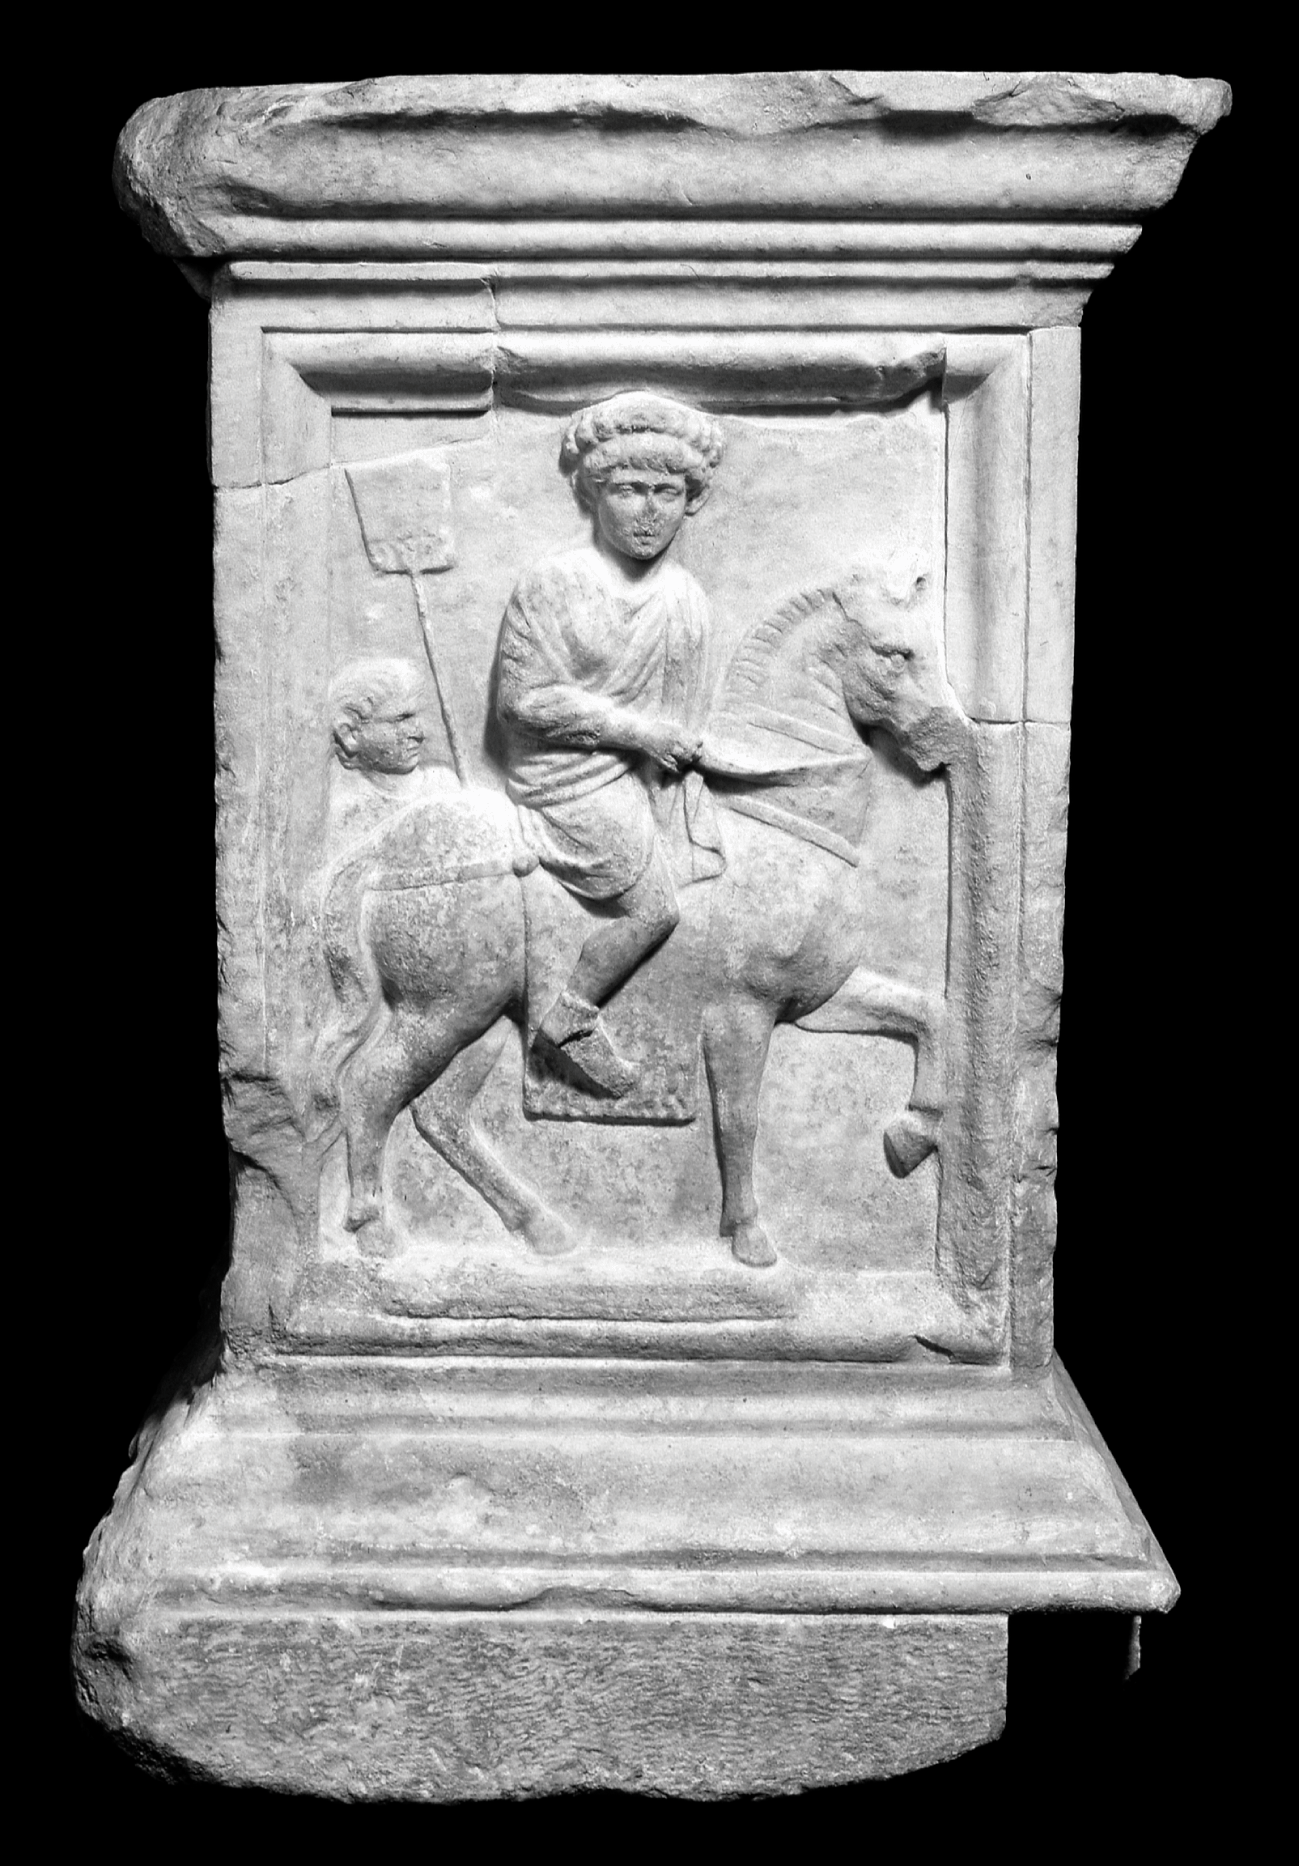 Equestrians on Display (Part III) - A History of the Roman